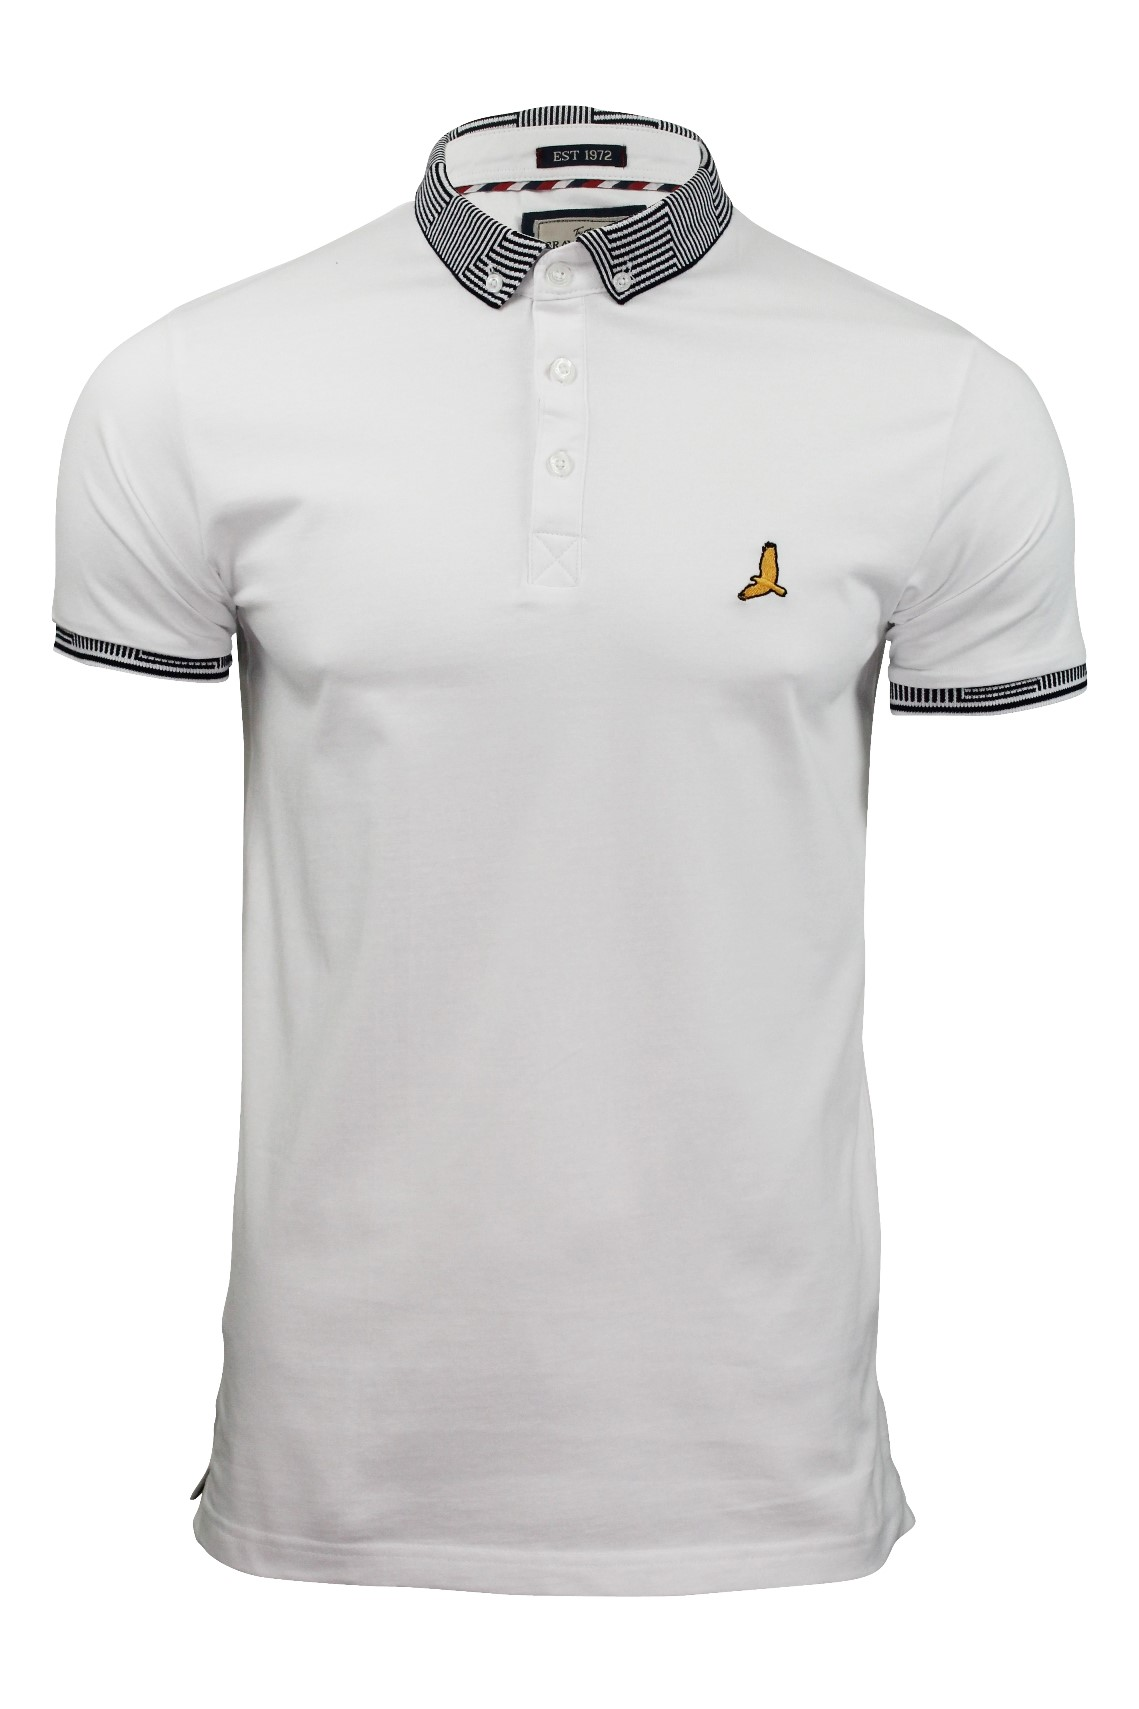 Mens-Polo-Shirt-by-Brave-Soul-039-Glover-039-Short-Sleeved